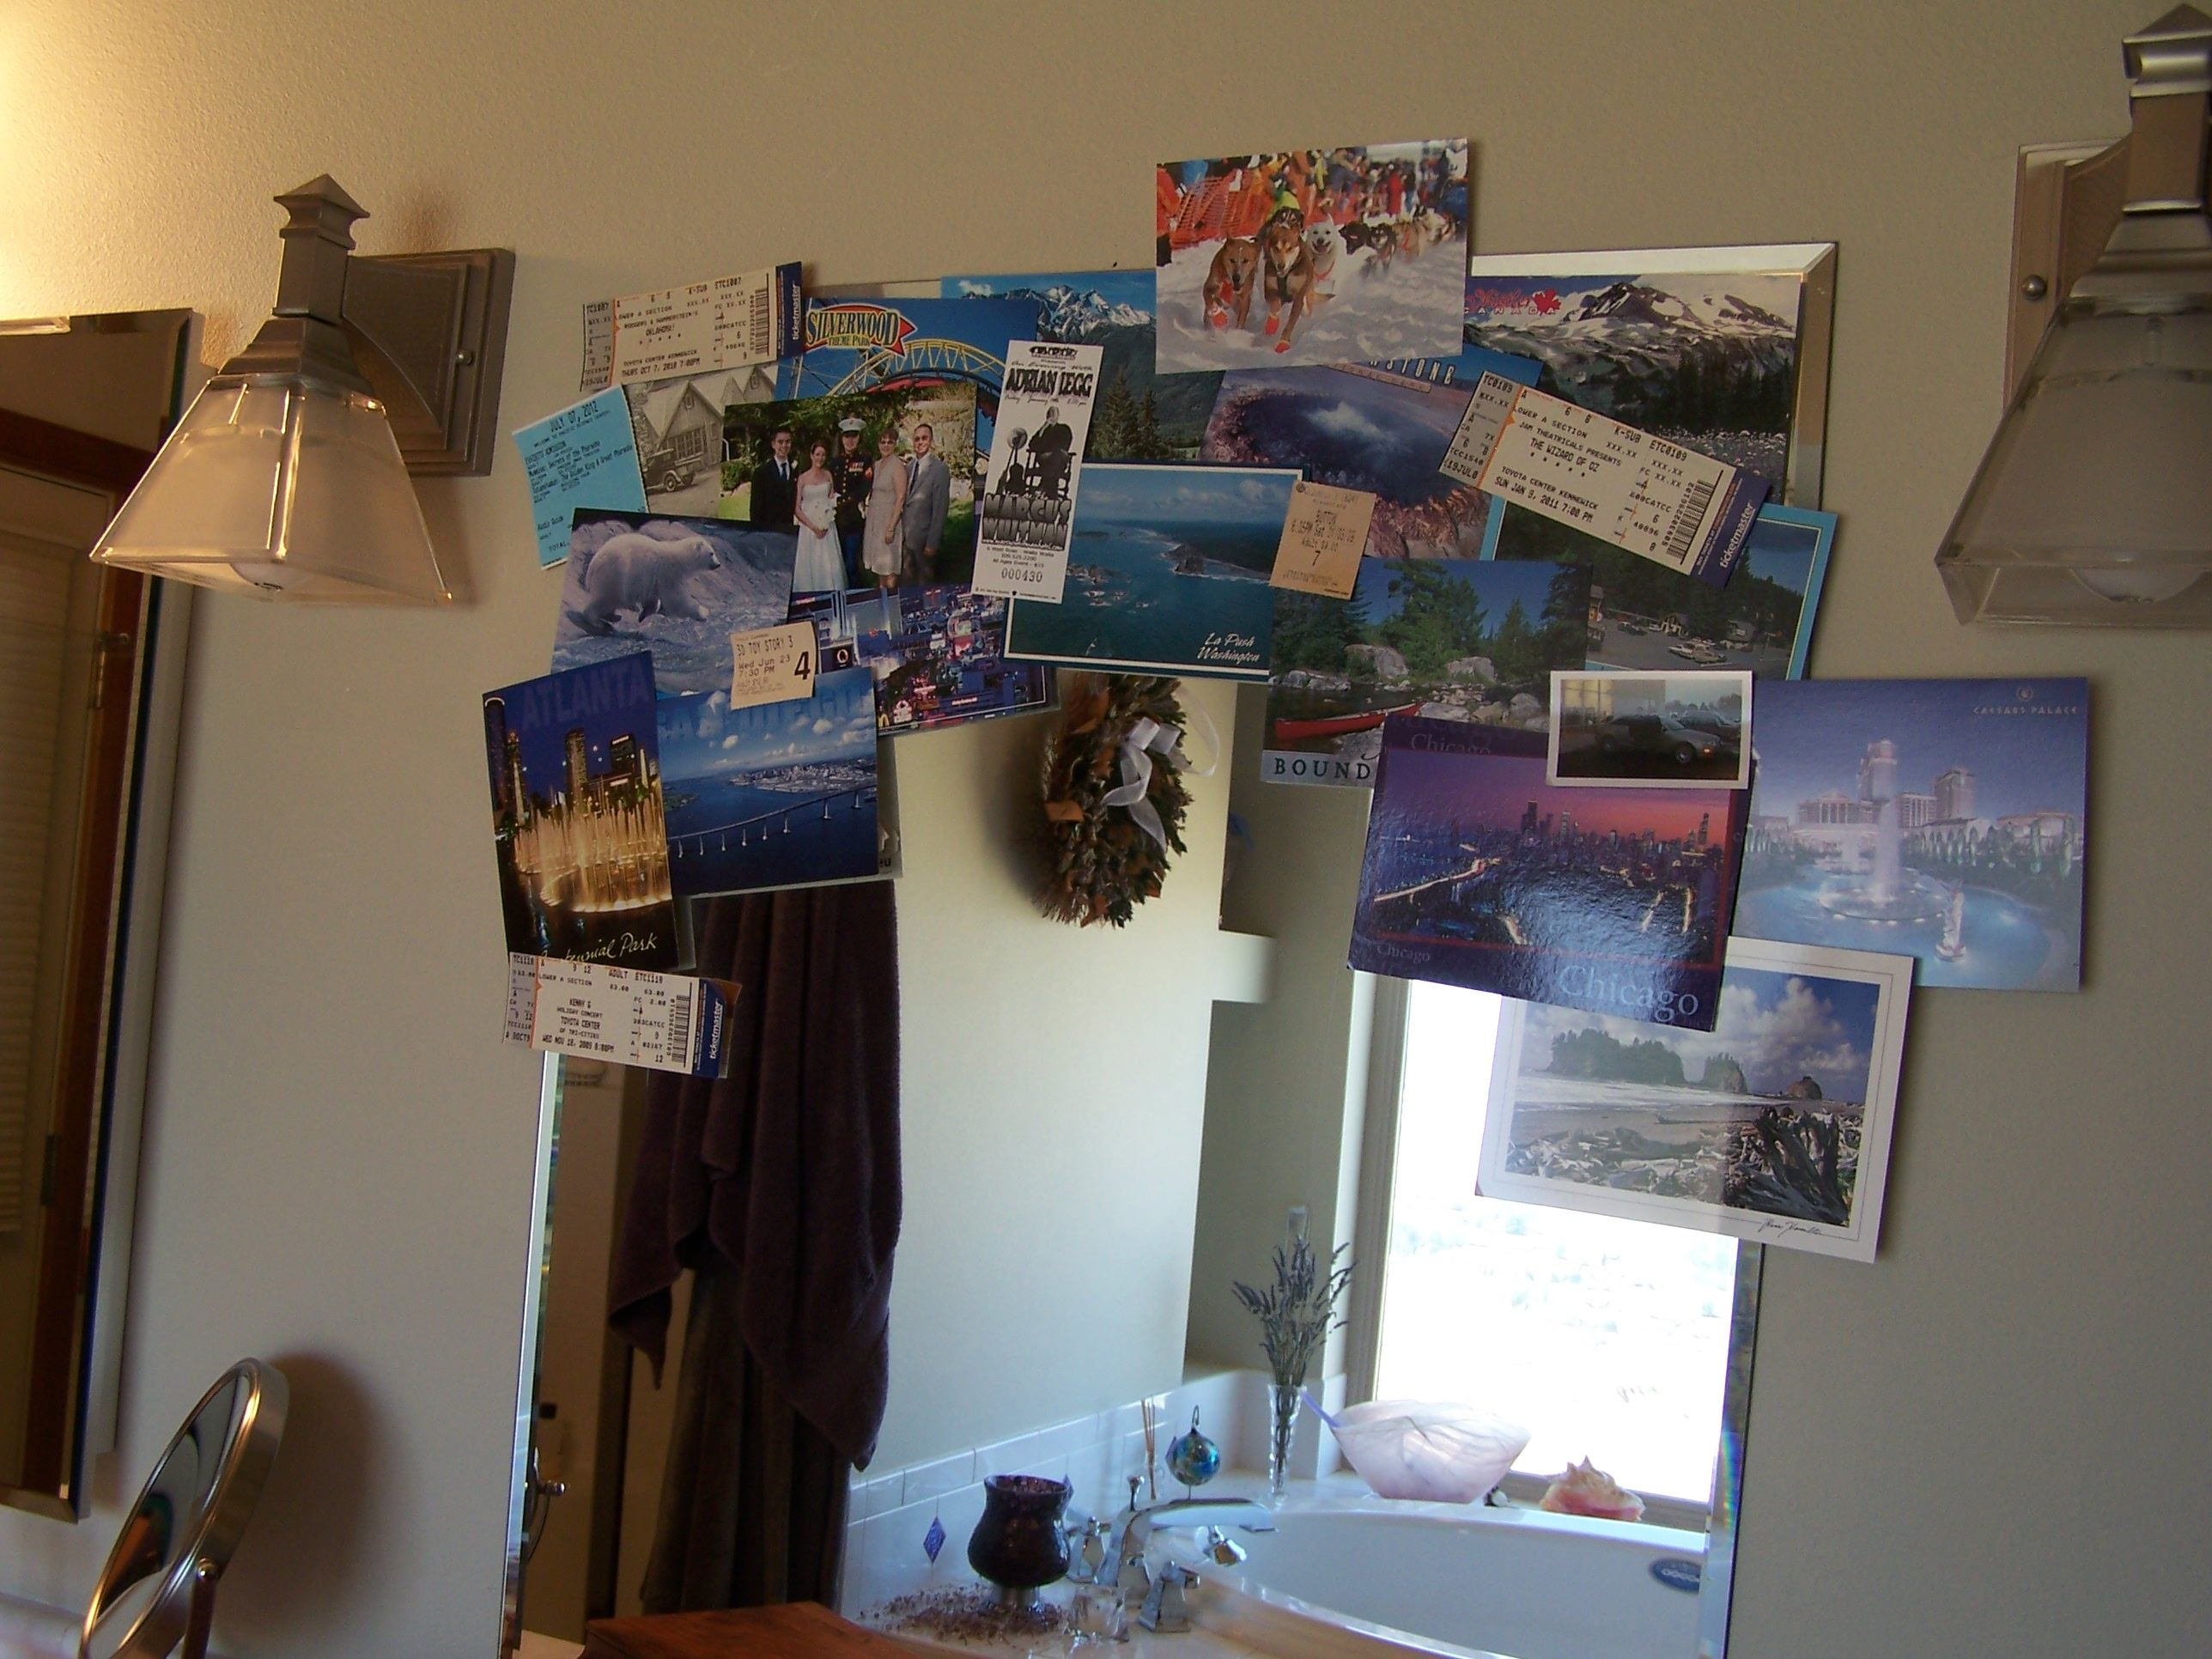 Postcards, ticket stubs, favorite photos placed around my mirror help me start the day with a smile on my face.